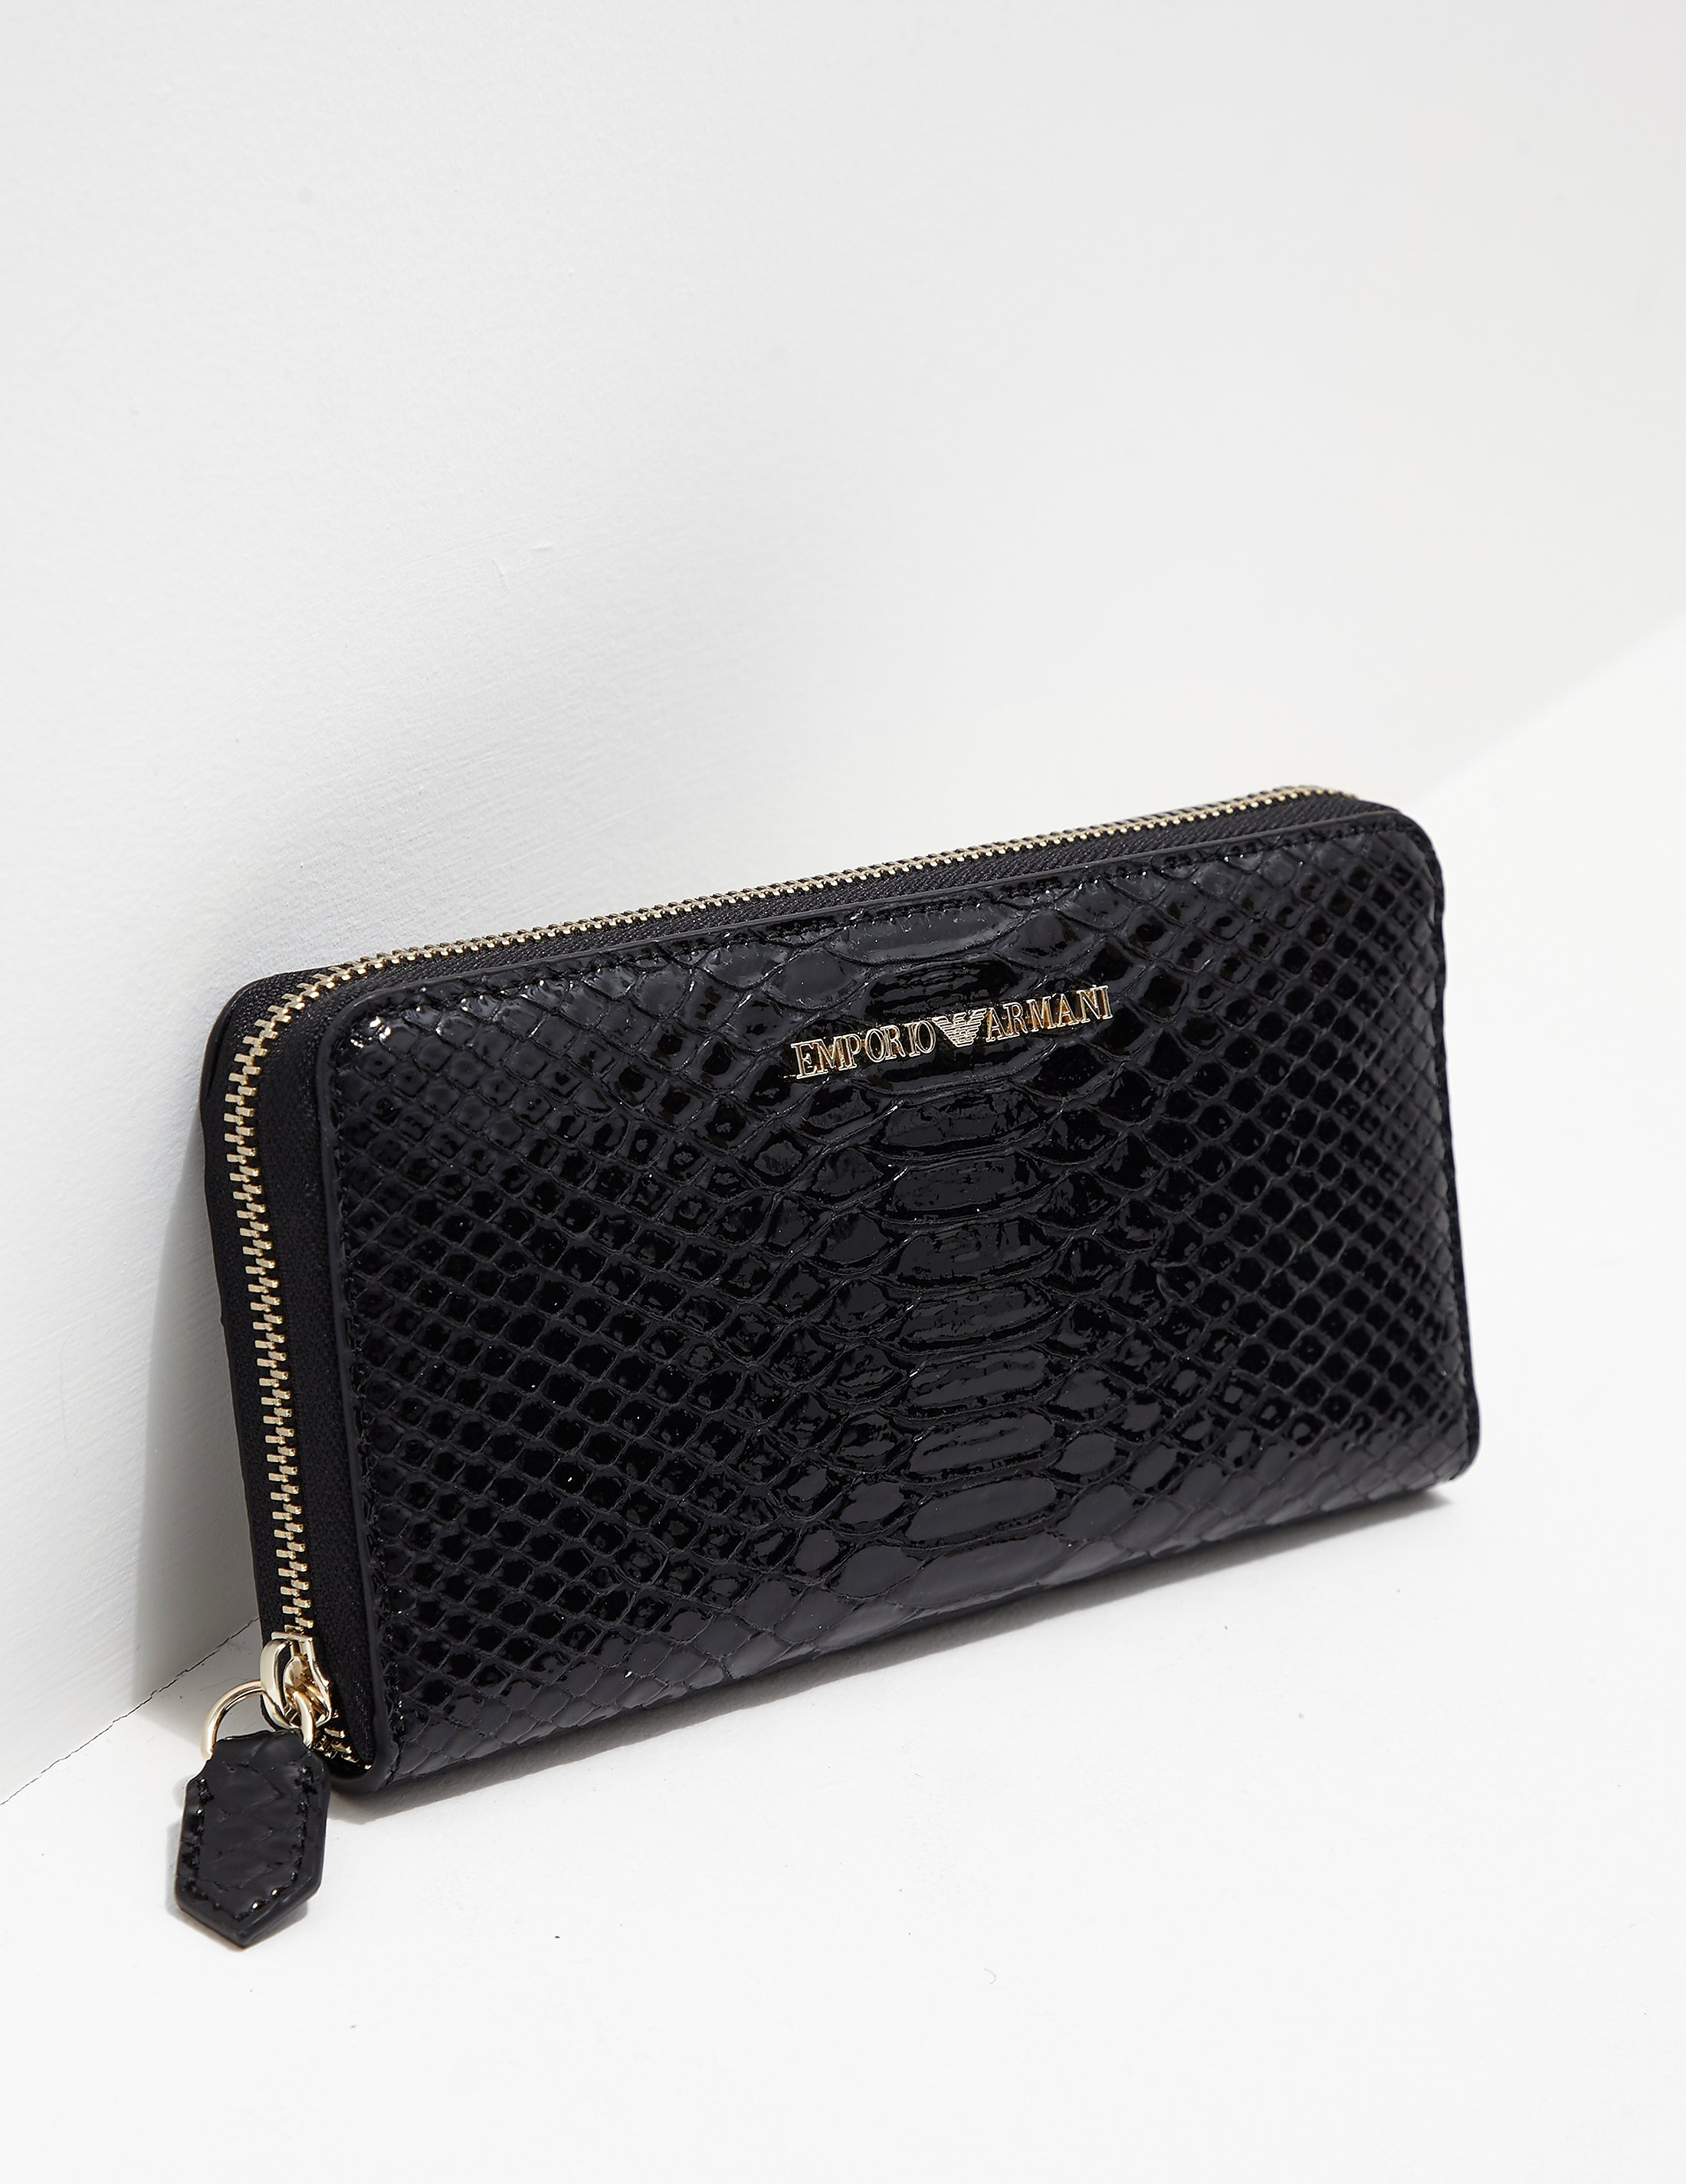 Emporio Armani Zip Around Snake Purse